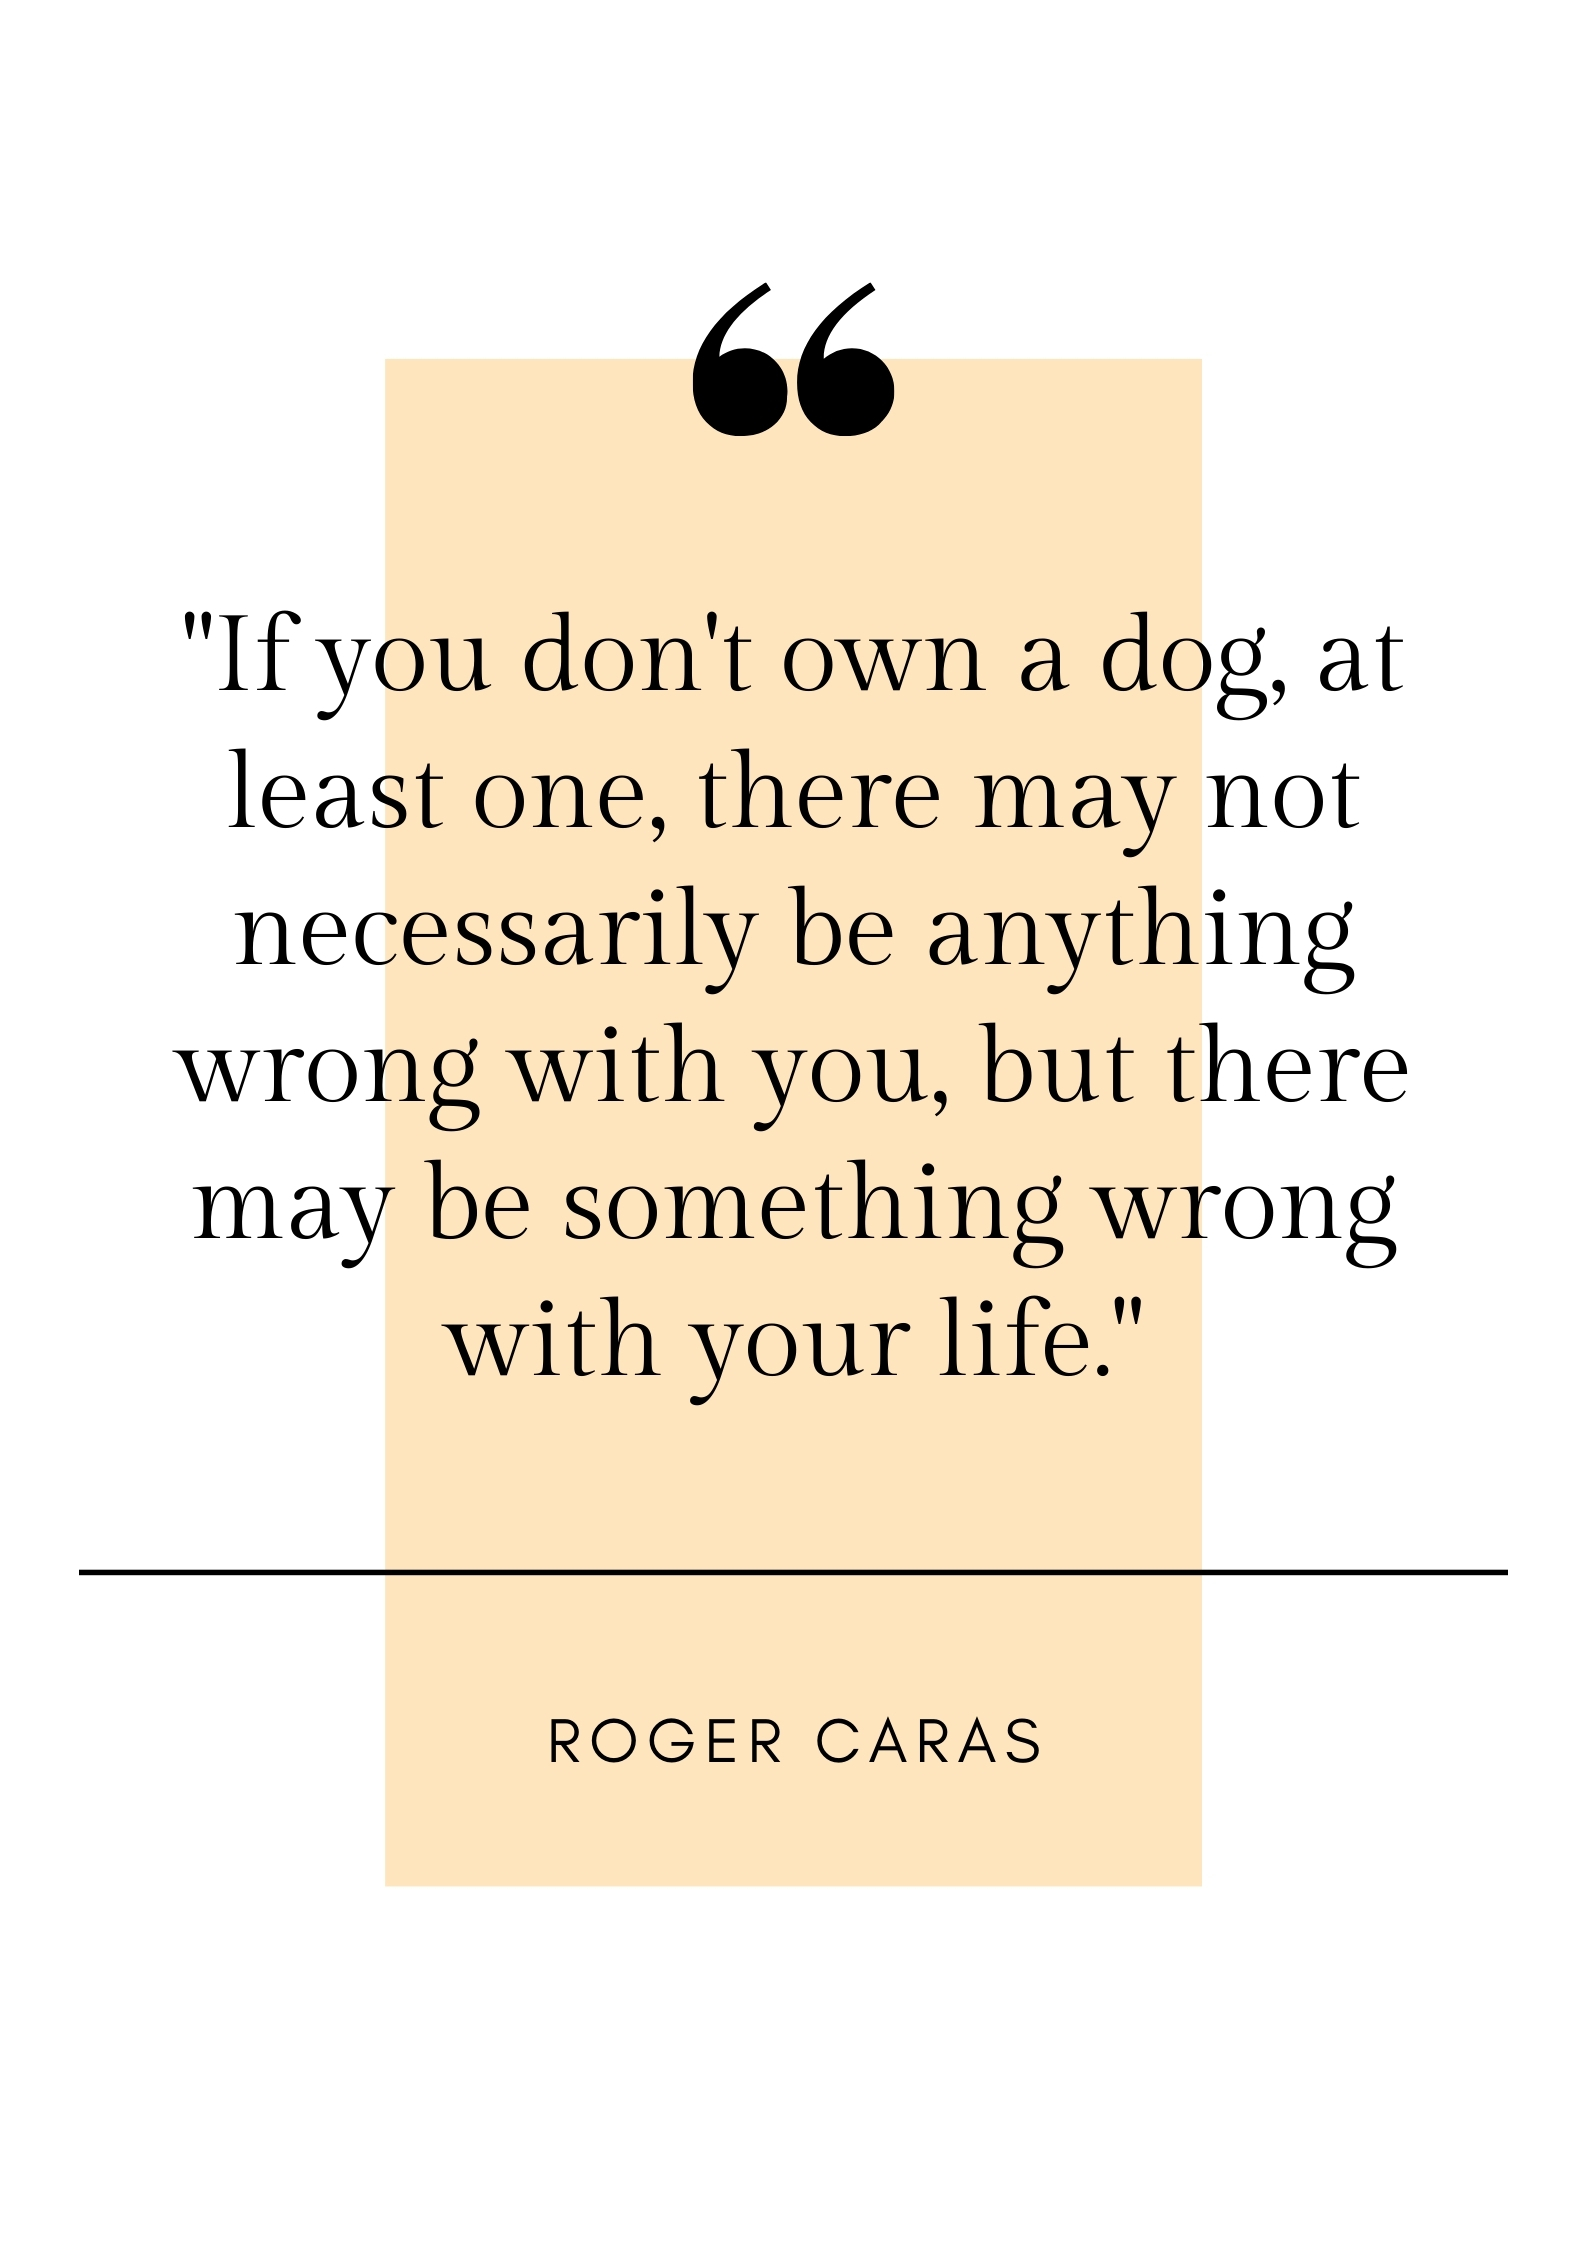 roger caras quote